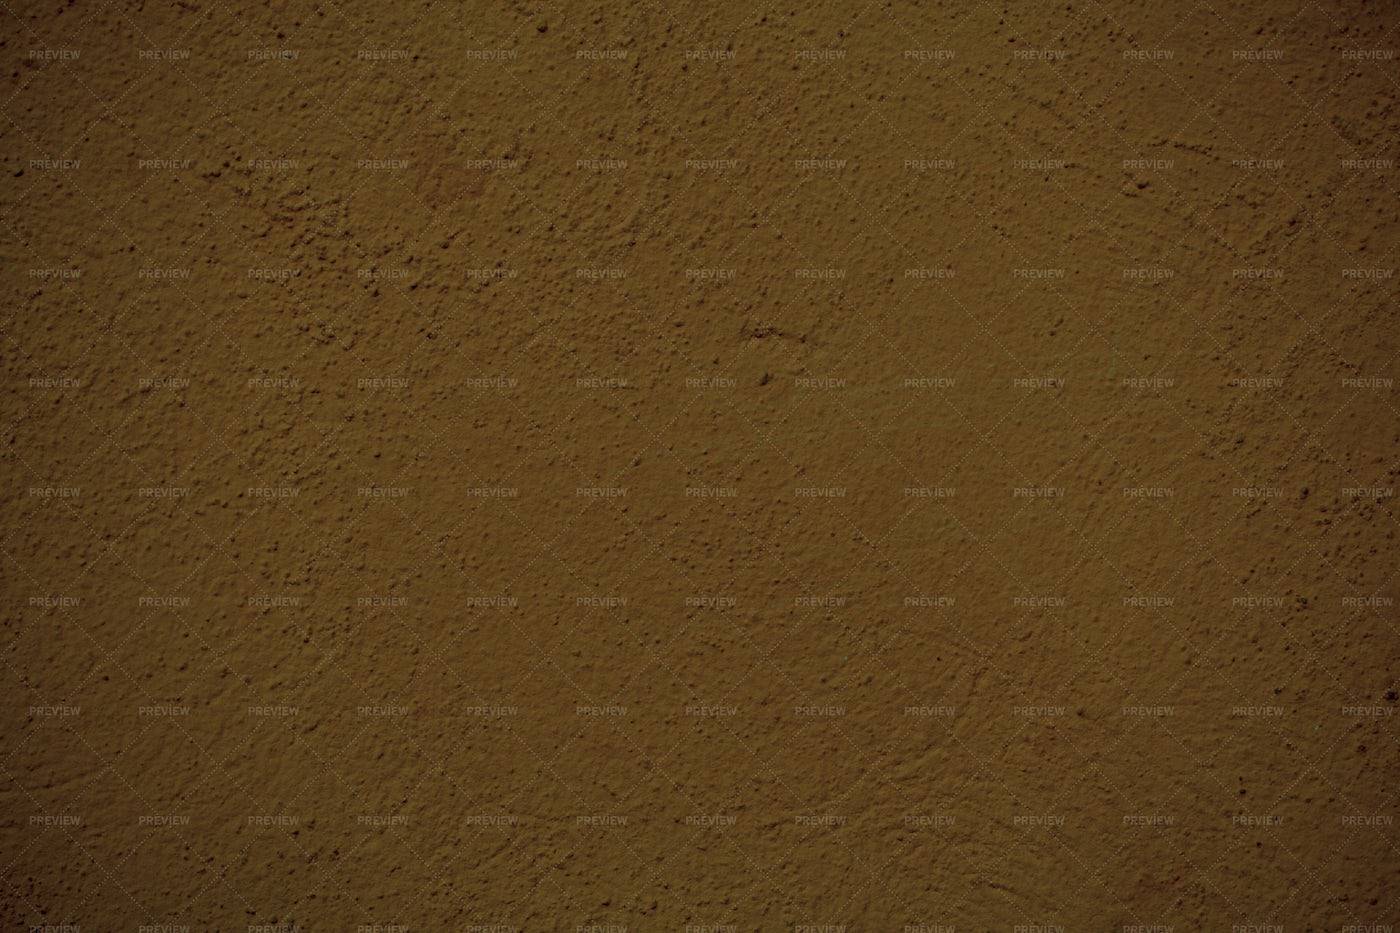 Background Texture Of A Painted Brown: Stock Photos